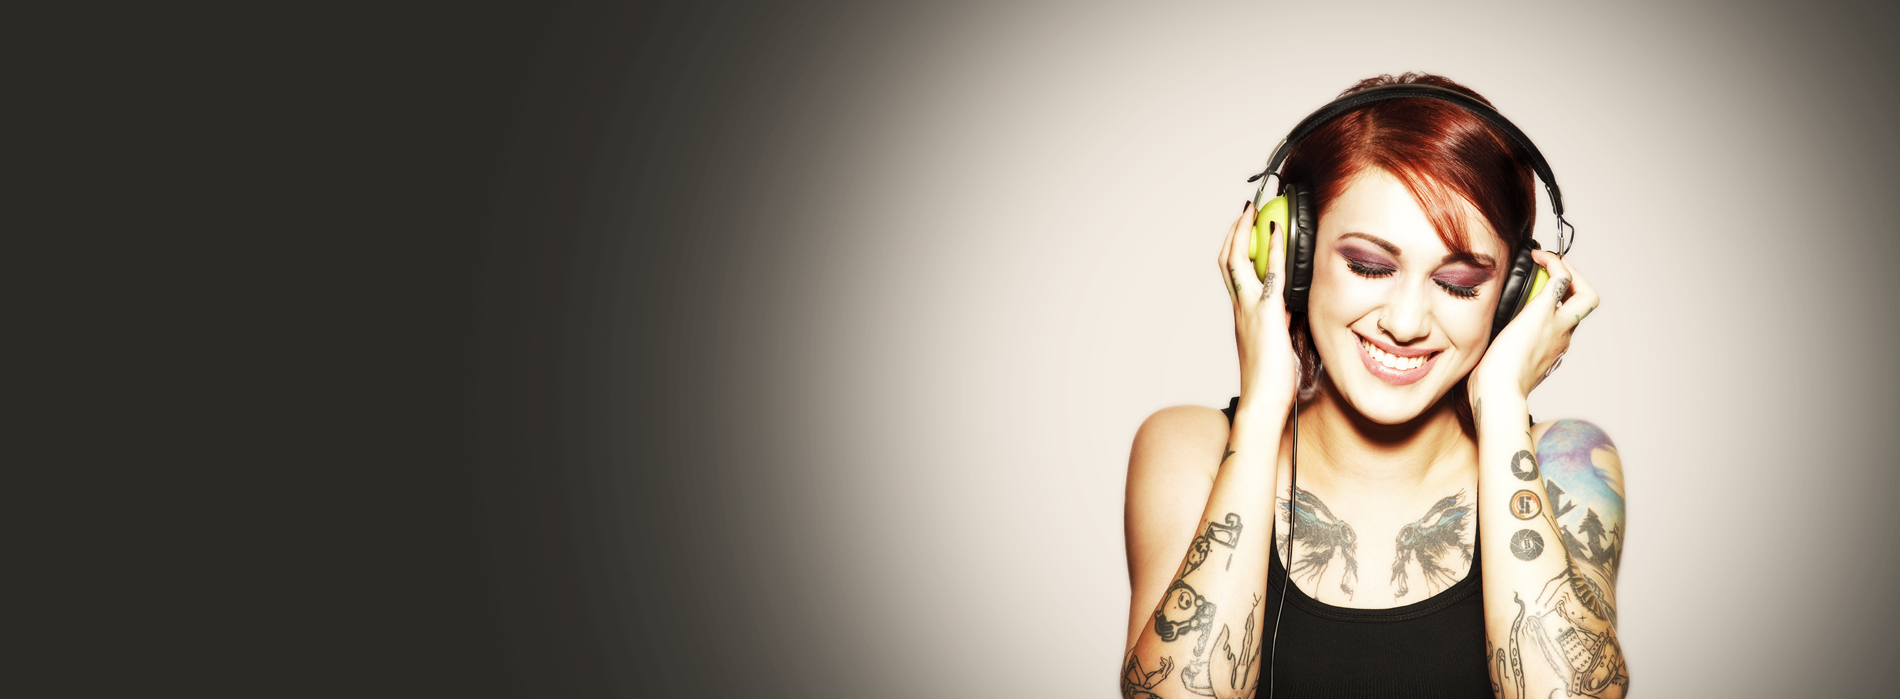 voicerebels_header_1900x700_3a